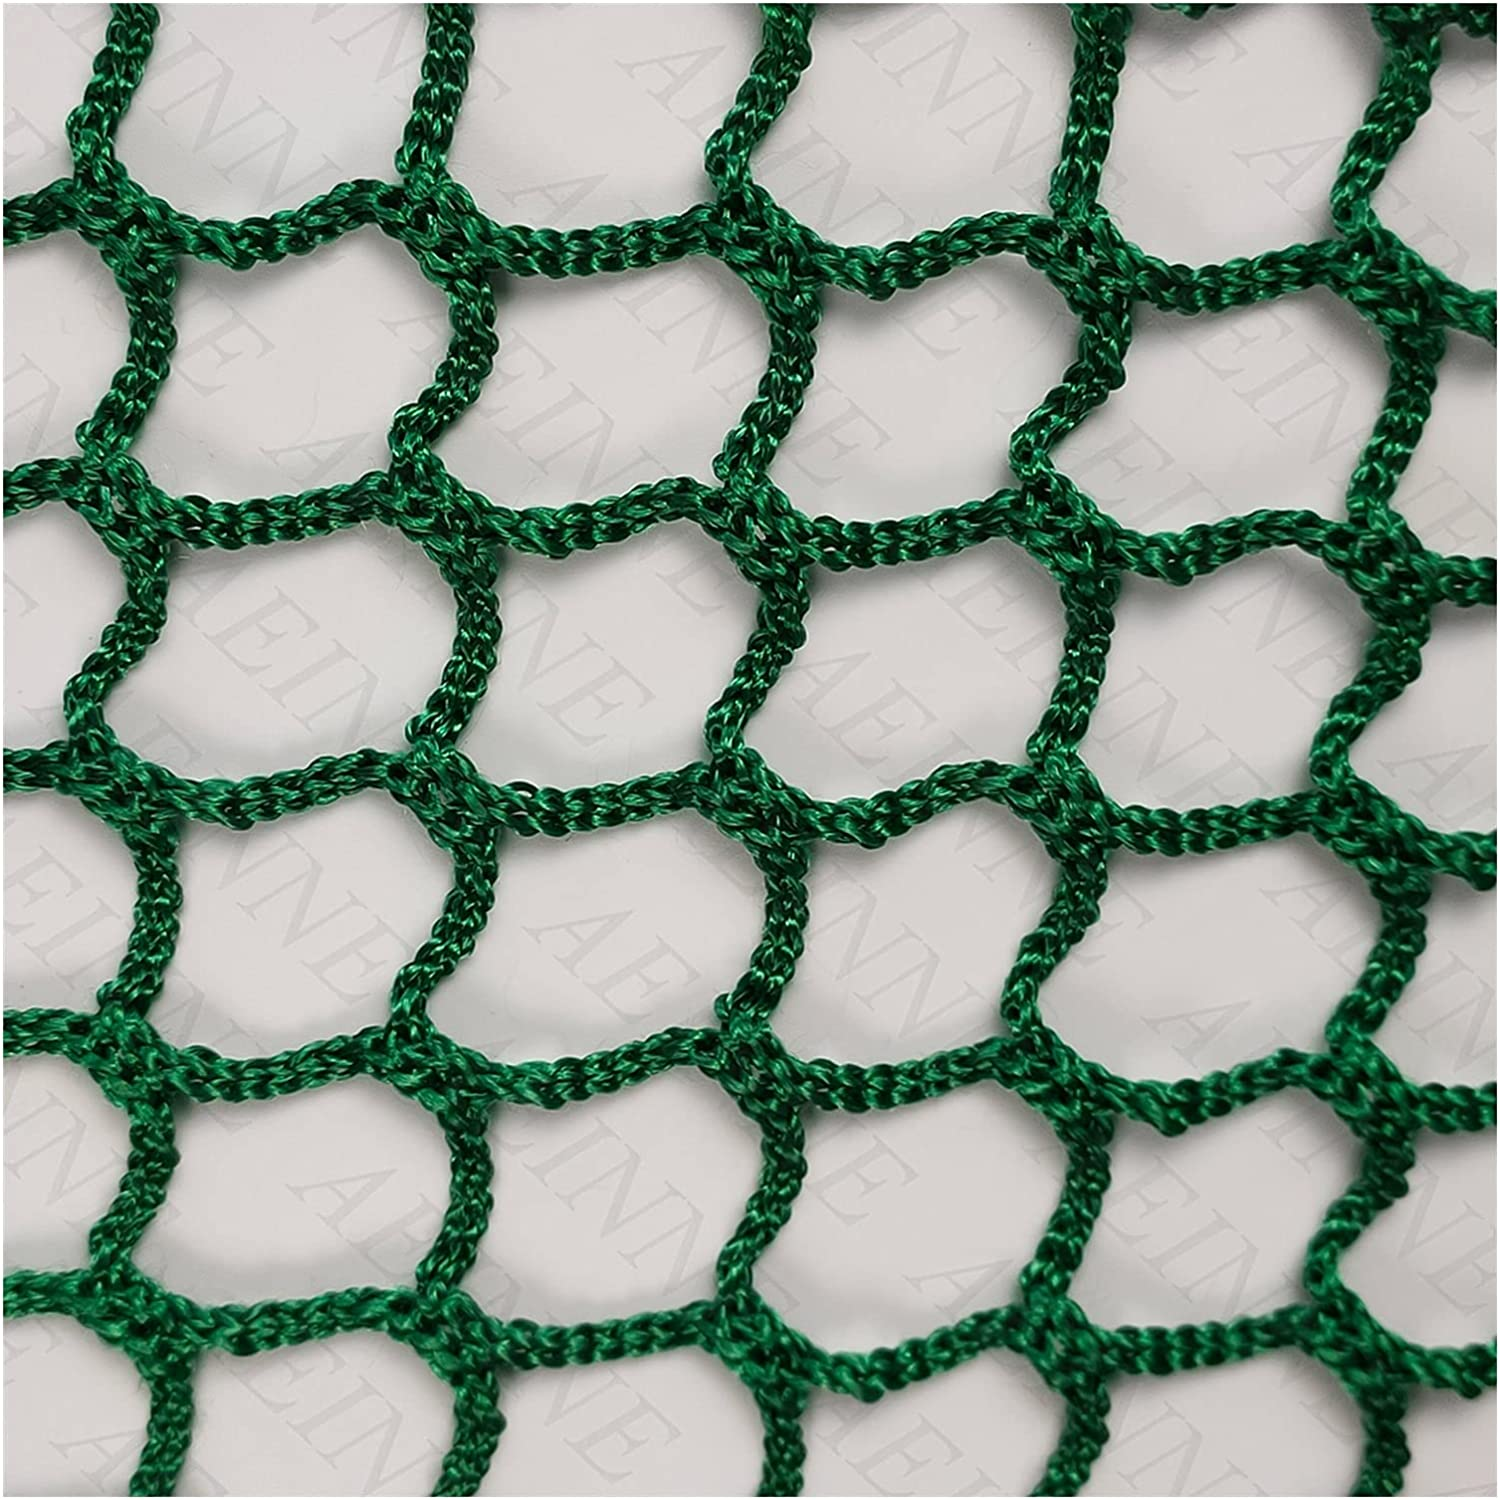 Bombing free shipping Golf Netting Material Practice Repla Rebounder Net sale